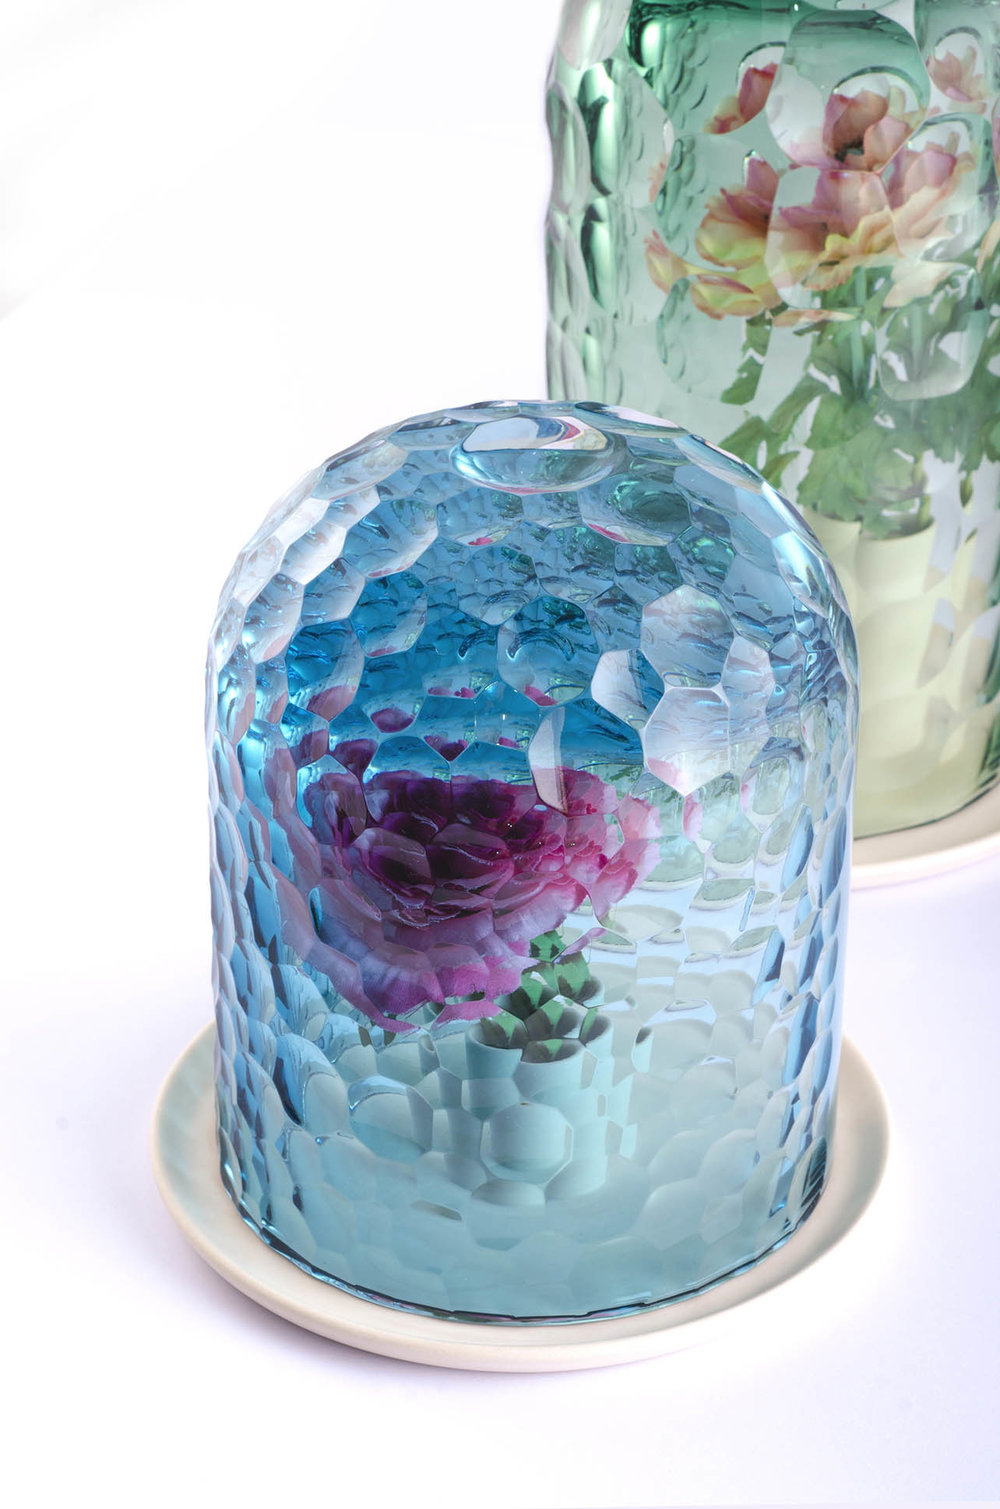 The  OP-Vase  collection  by Bilge Nur Saltik, creates a kaleidoscopic effect with its   unique technique of cutting glass, a timeless material.